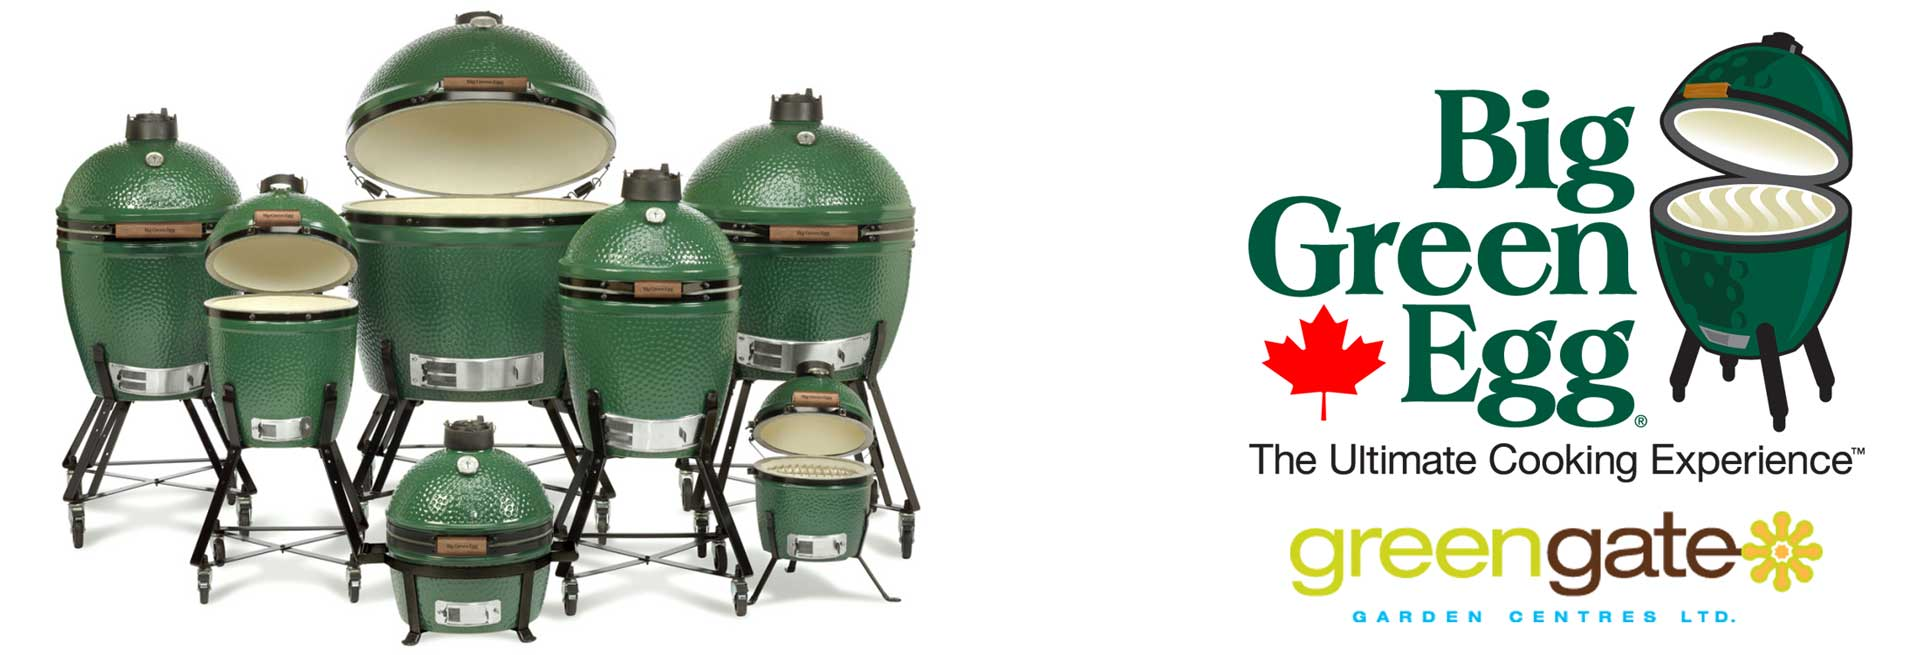 Big Green Egg BBQ's at greengate